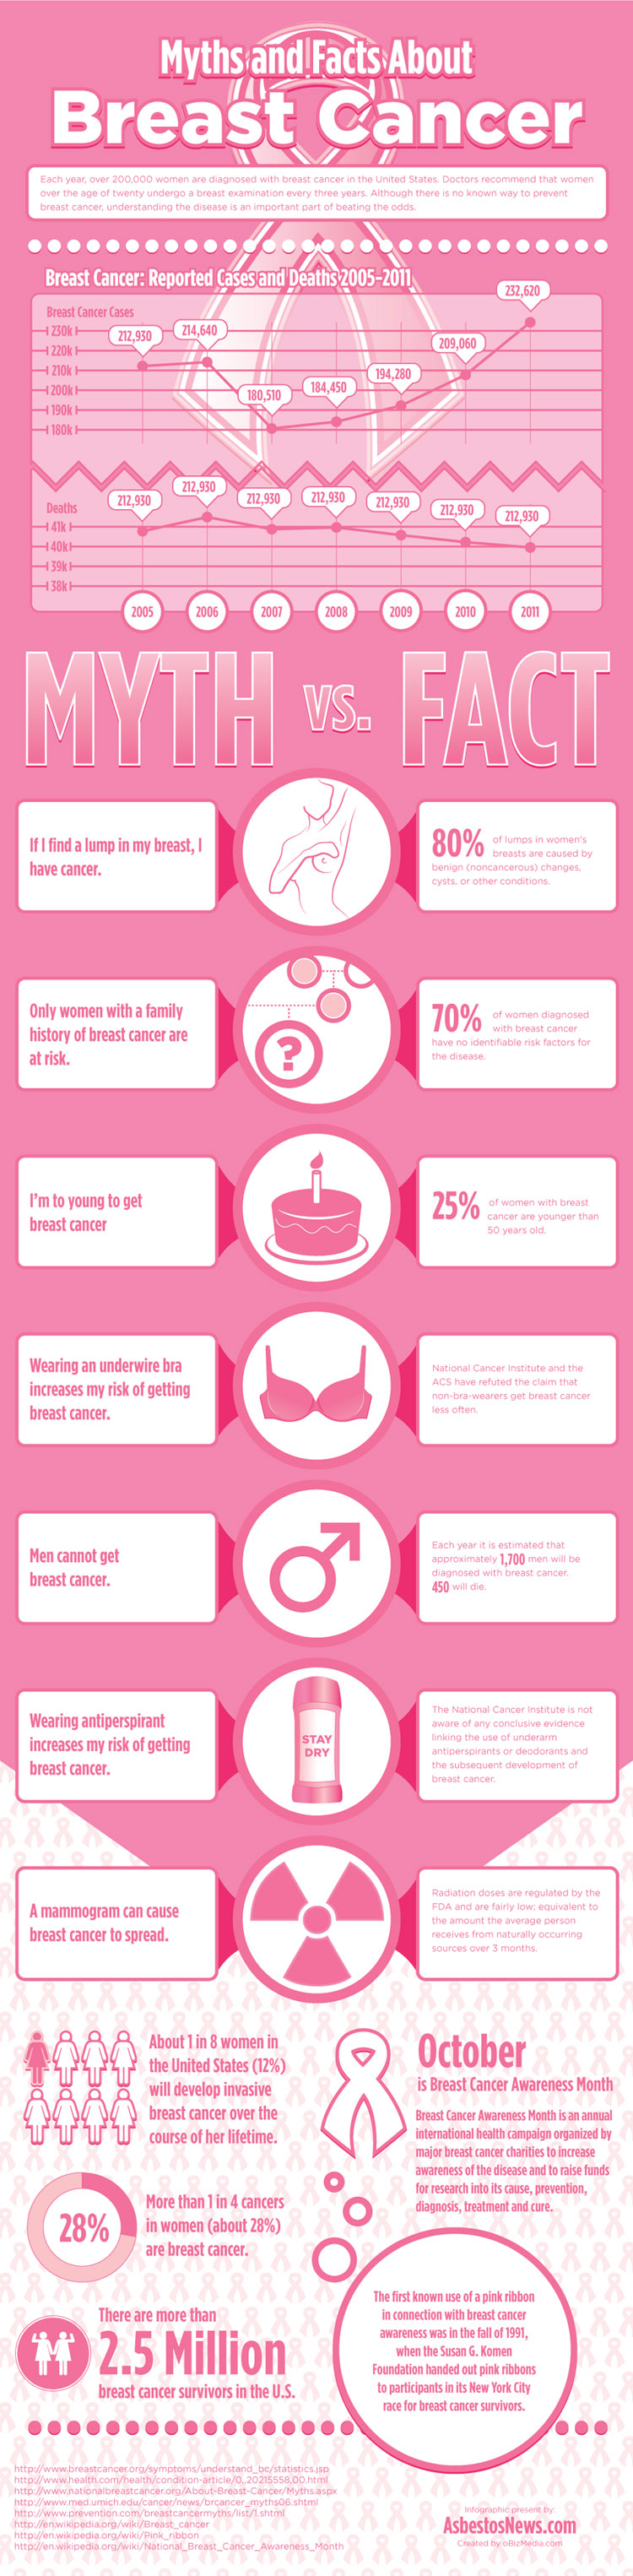 Breast Cancer Myths vs Facts